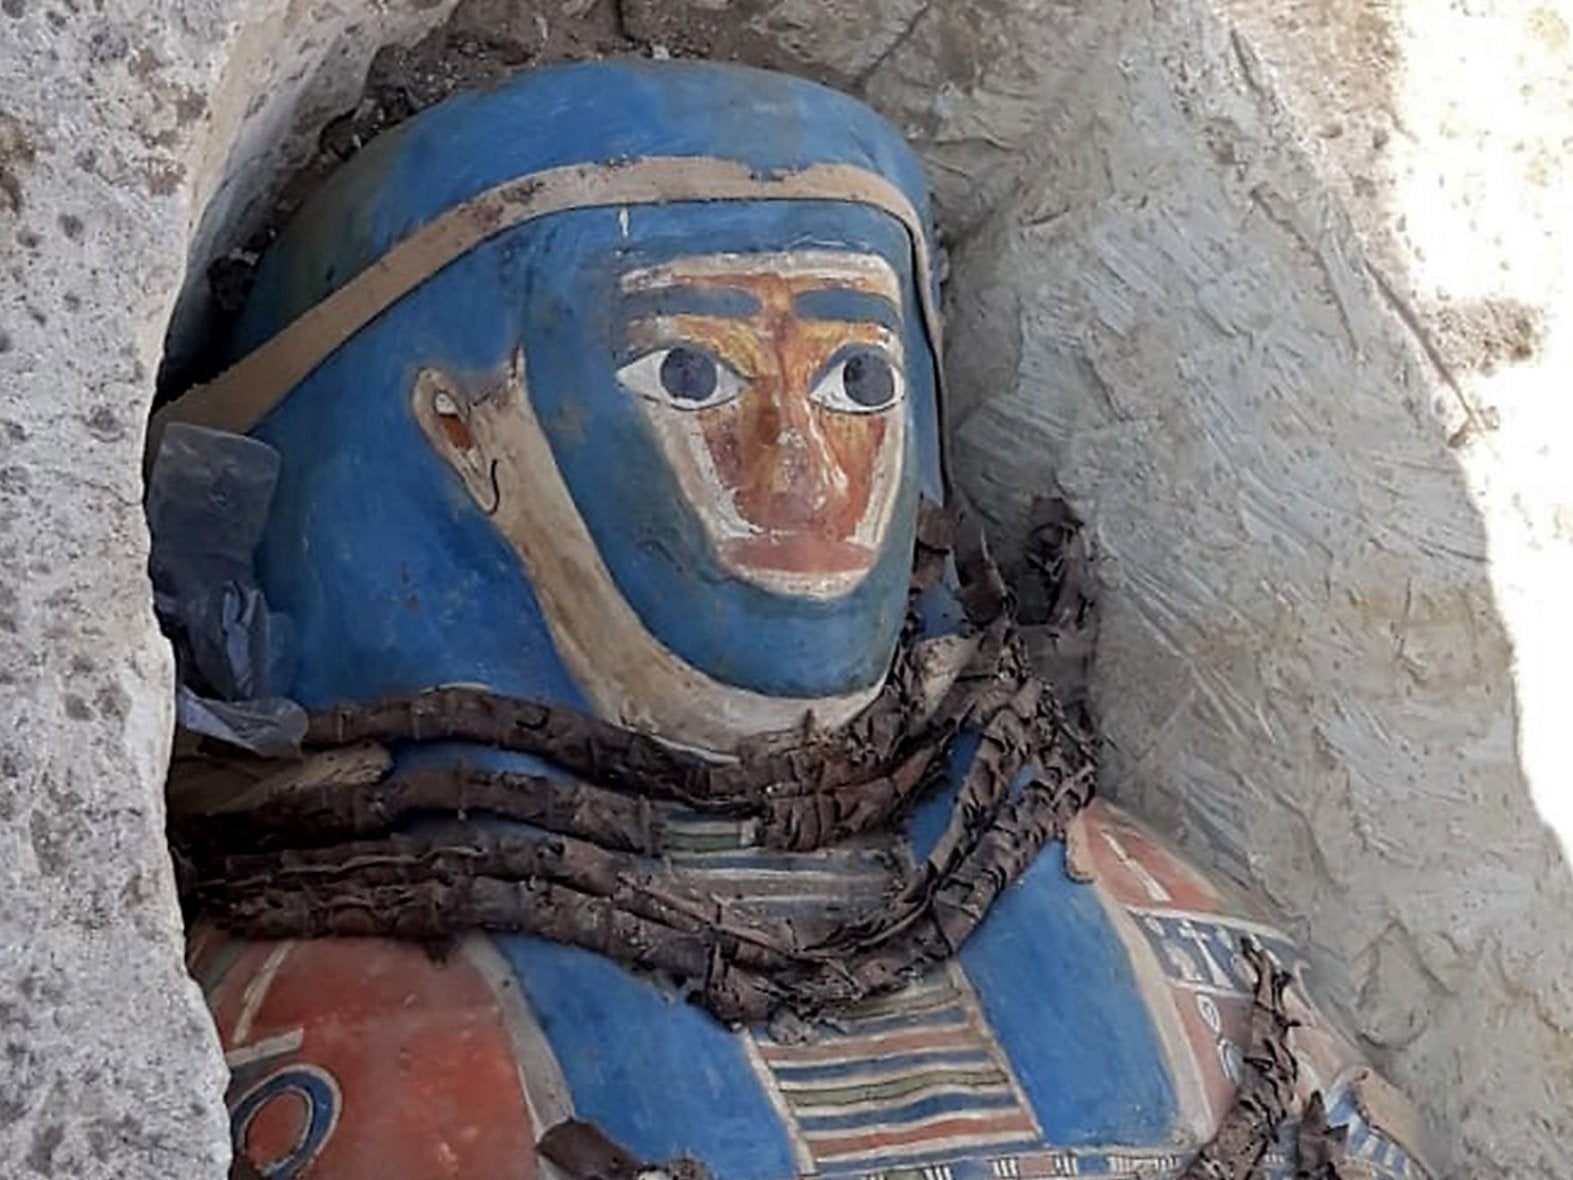 Archaeologists discover eight ancient mummies in Egypt